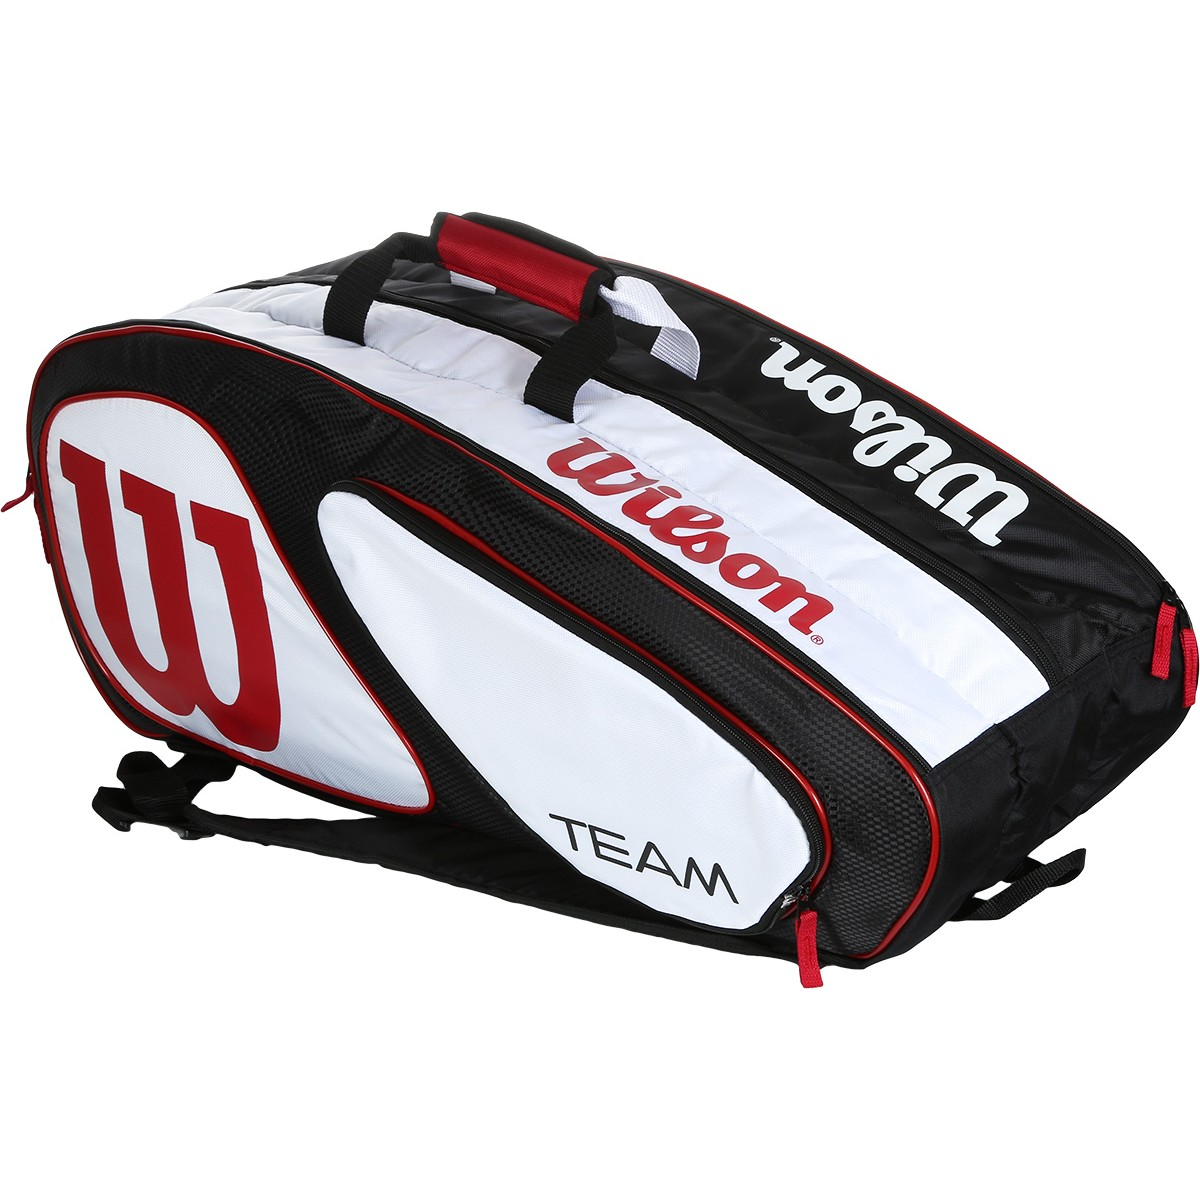 SAC DE TENNIS WILSON TEAM 12 LIMITED EDITION